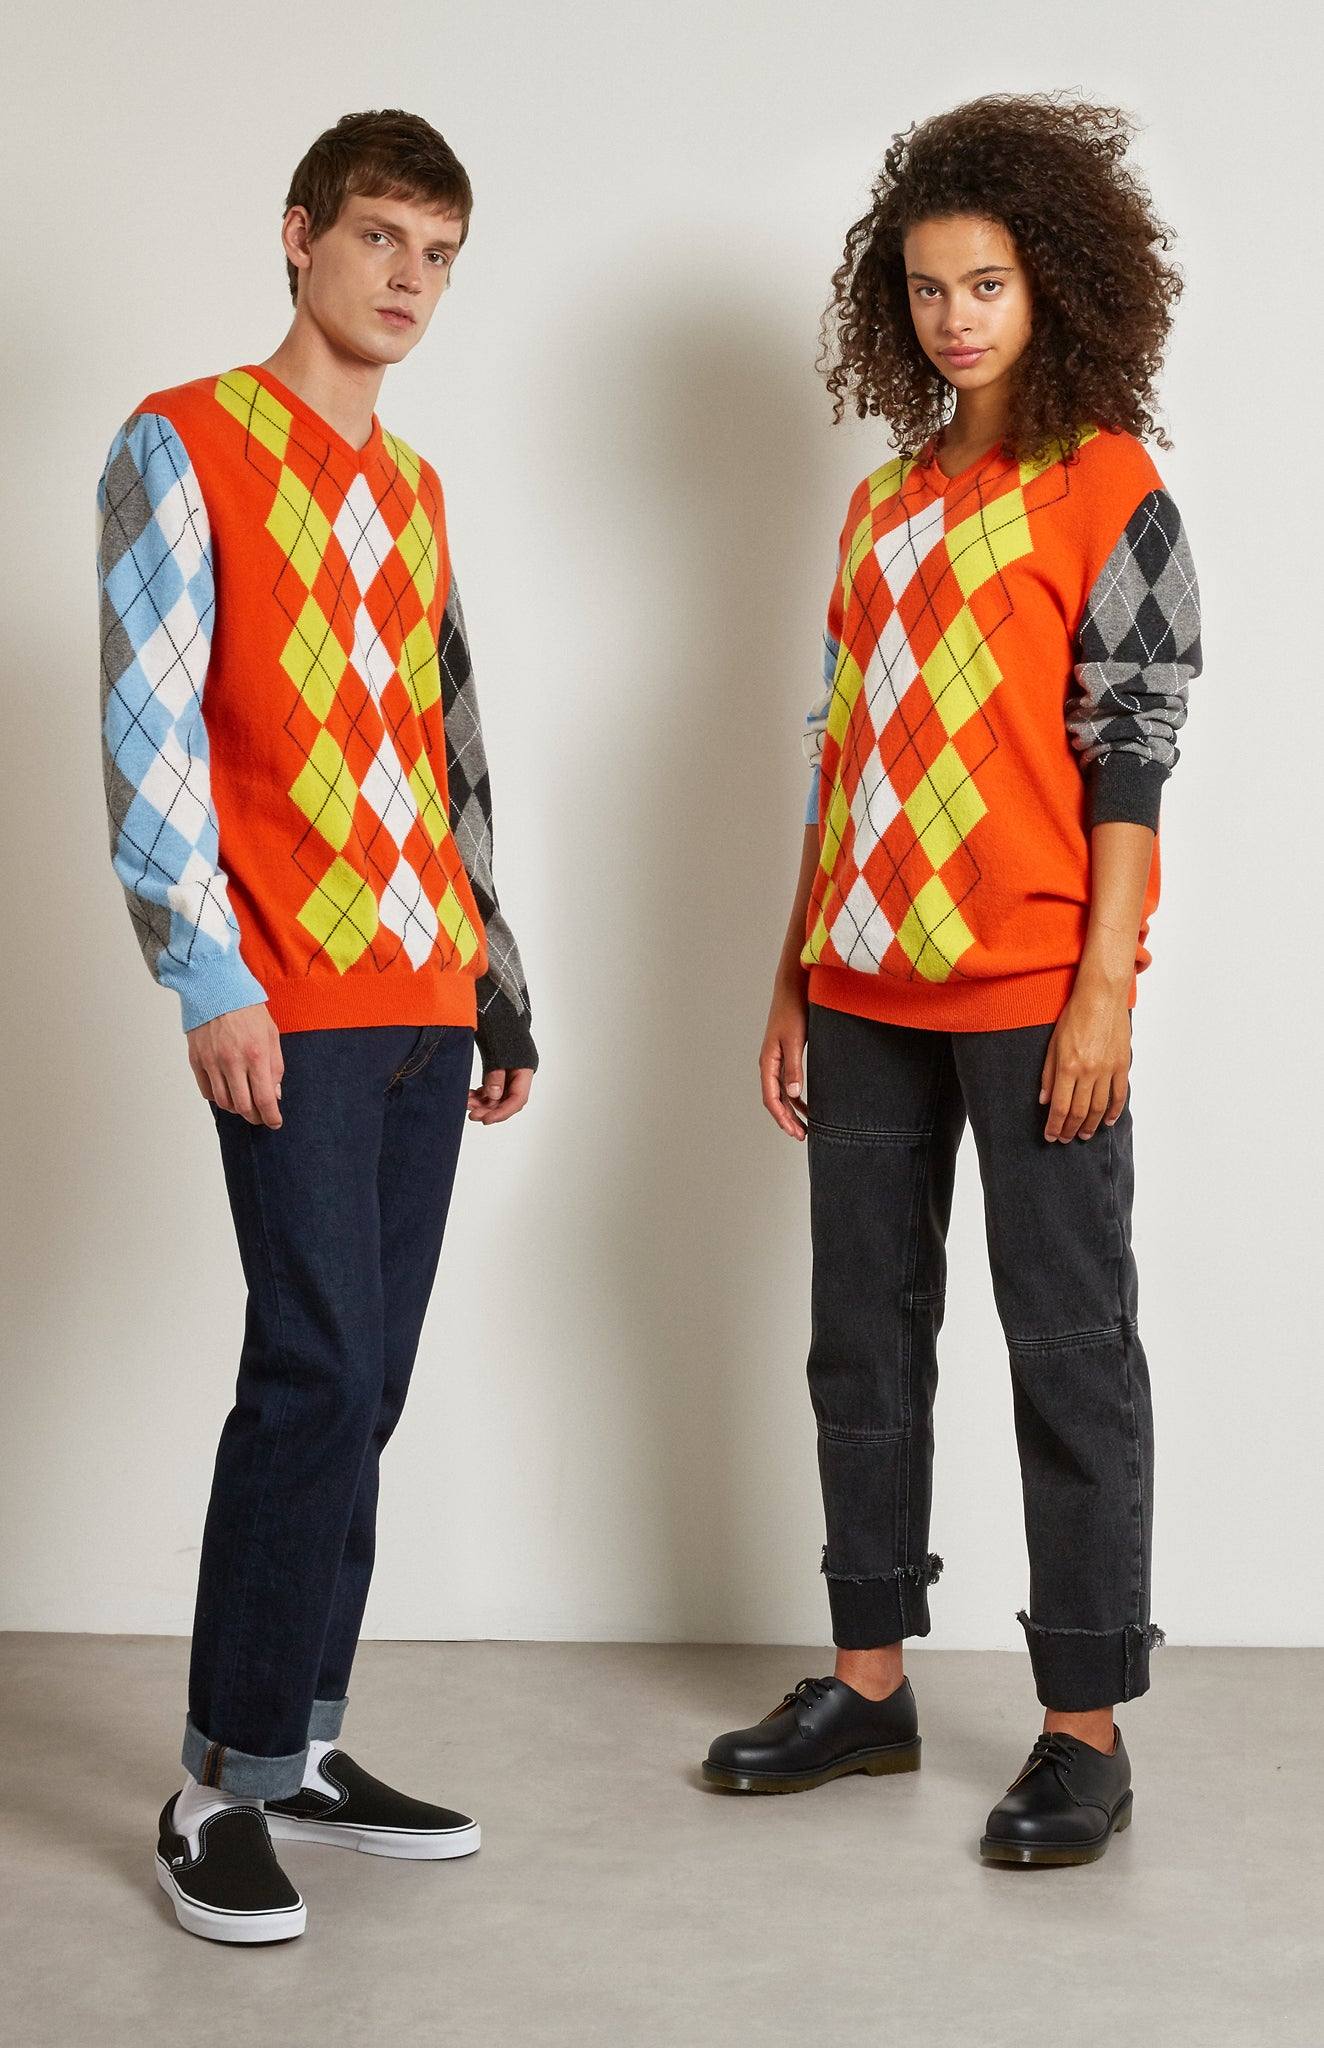 Pringle Reissued Unisex Patchwork Argyle Jumper on male and female model